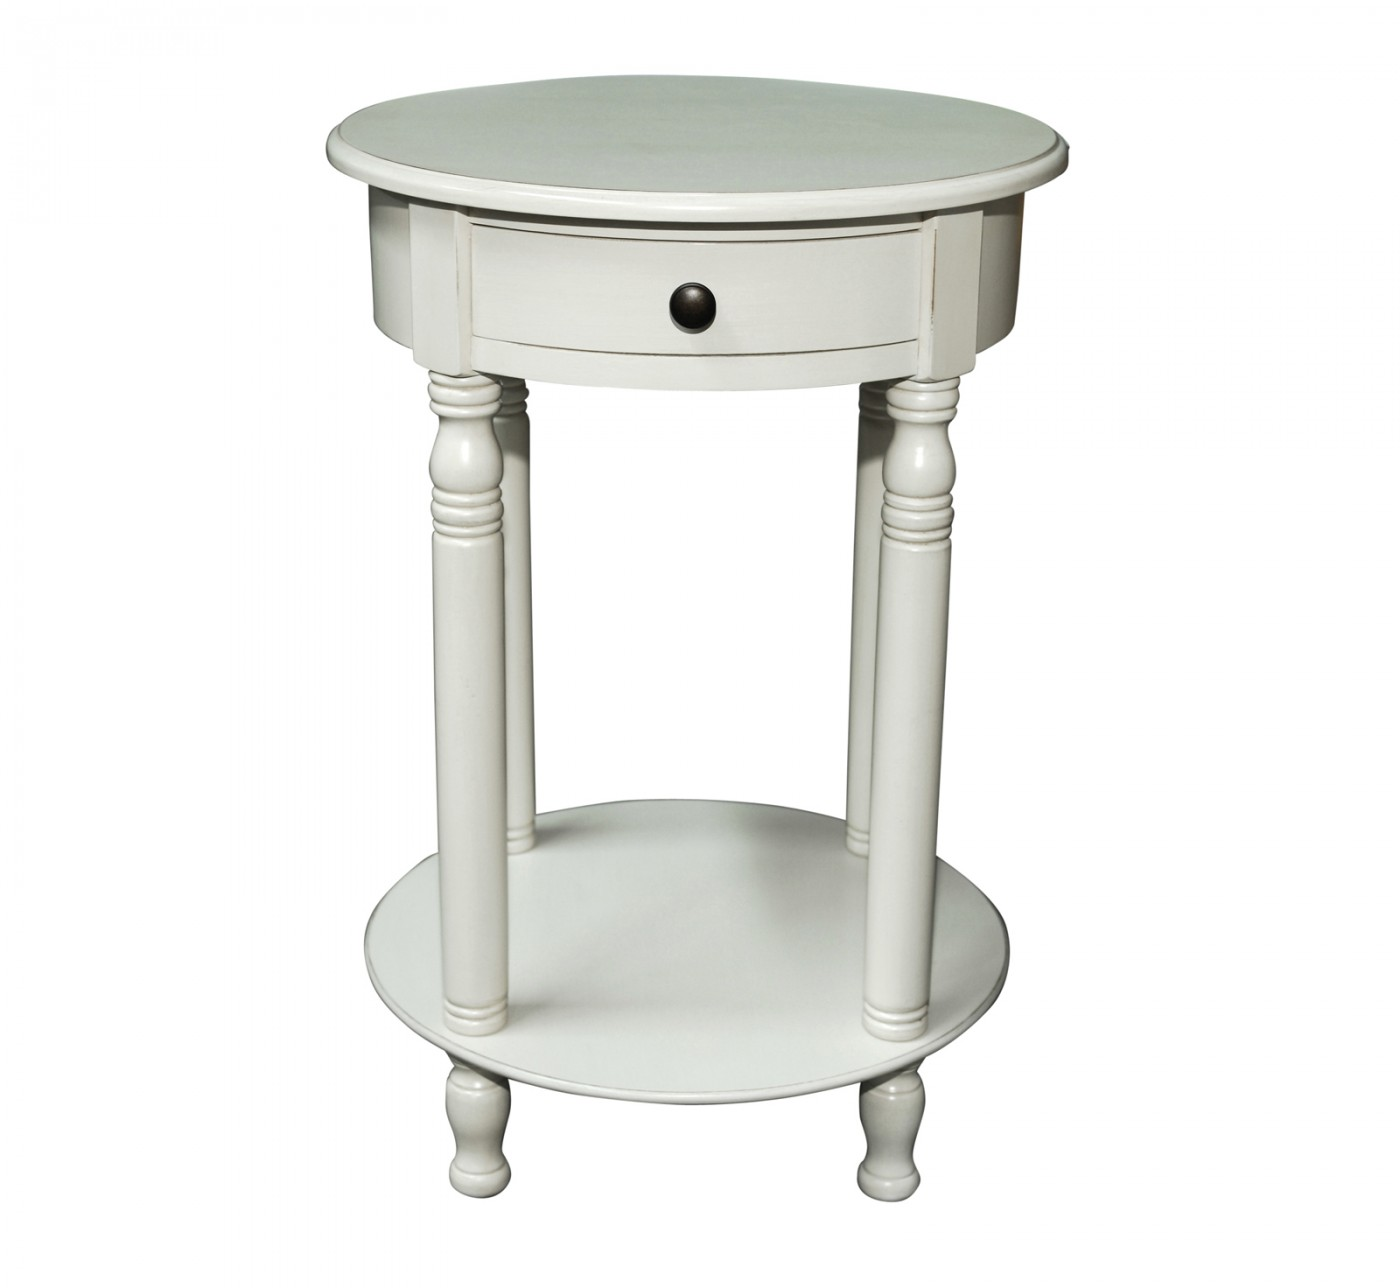 accent tables grey table white corner rustic round bedside with storage side drawer entryway wood and metal small end full size amazing cute lamps craigslist used furniture gray